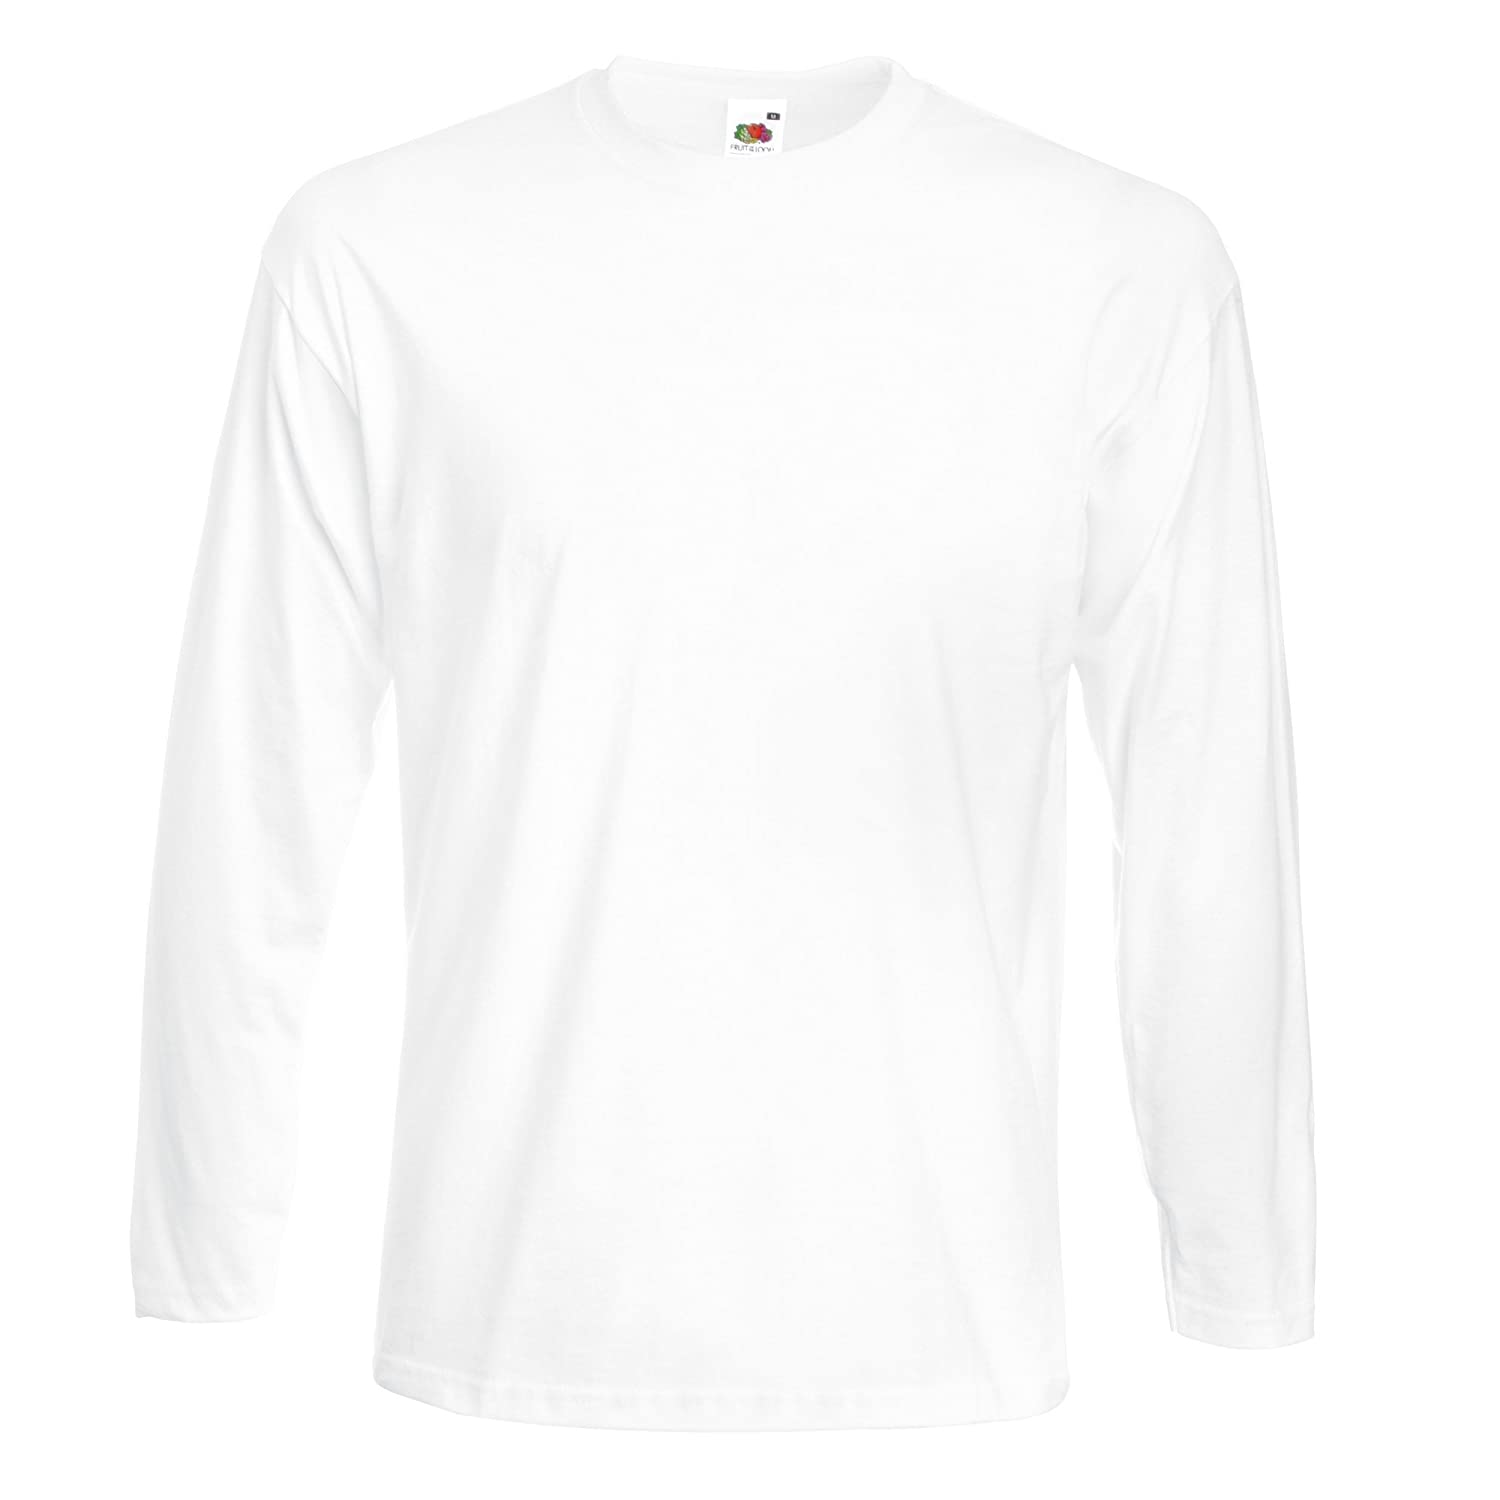 Fruit Of The Loom Super Premium Long Sleeve Softer Feel Gurantee Perform T-Shirt